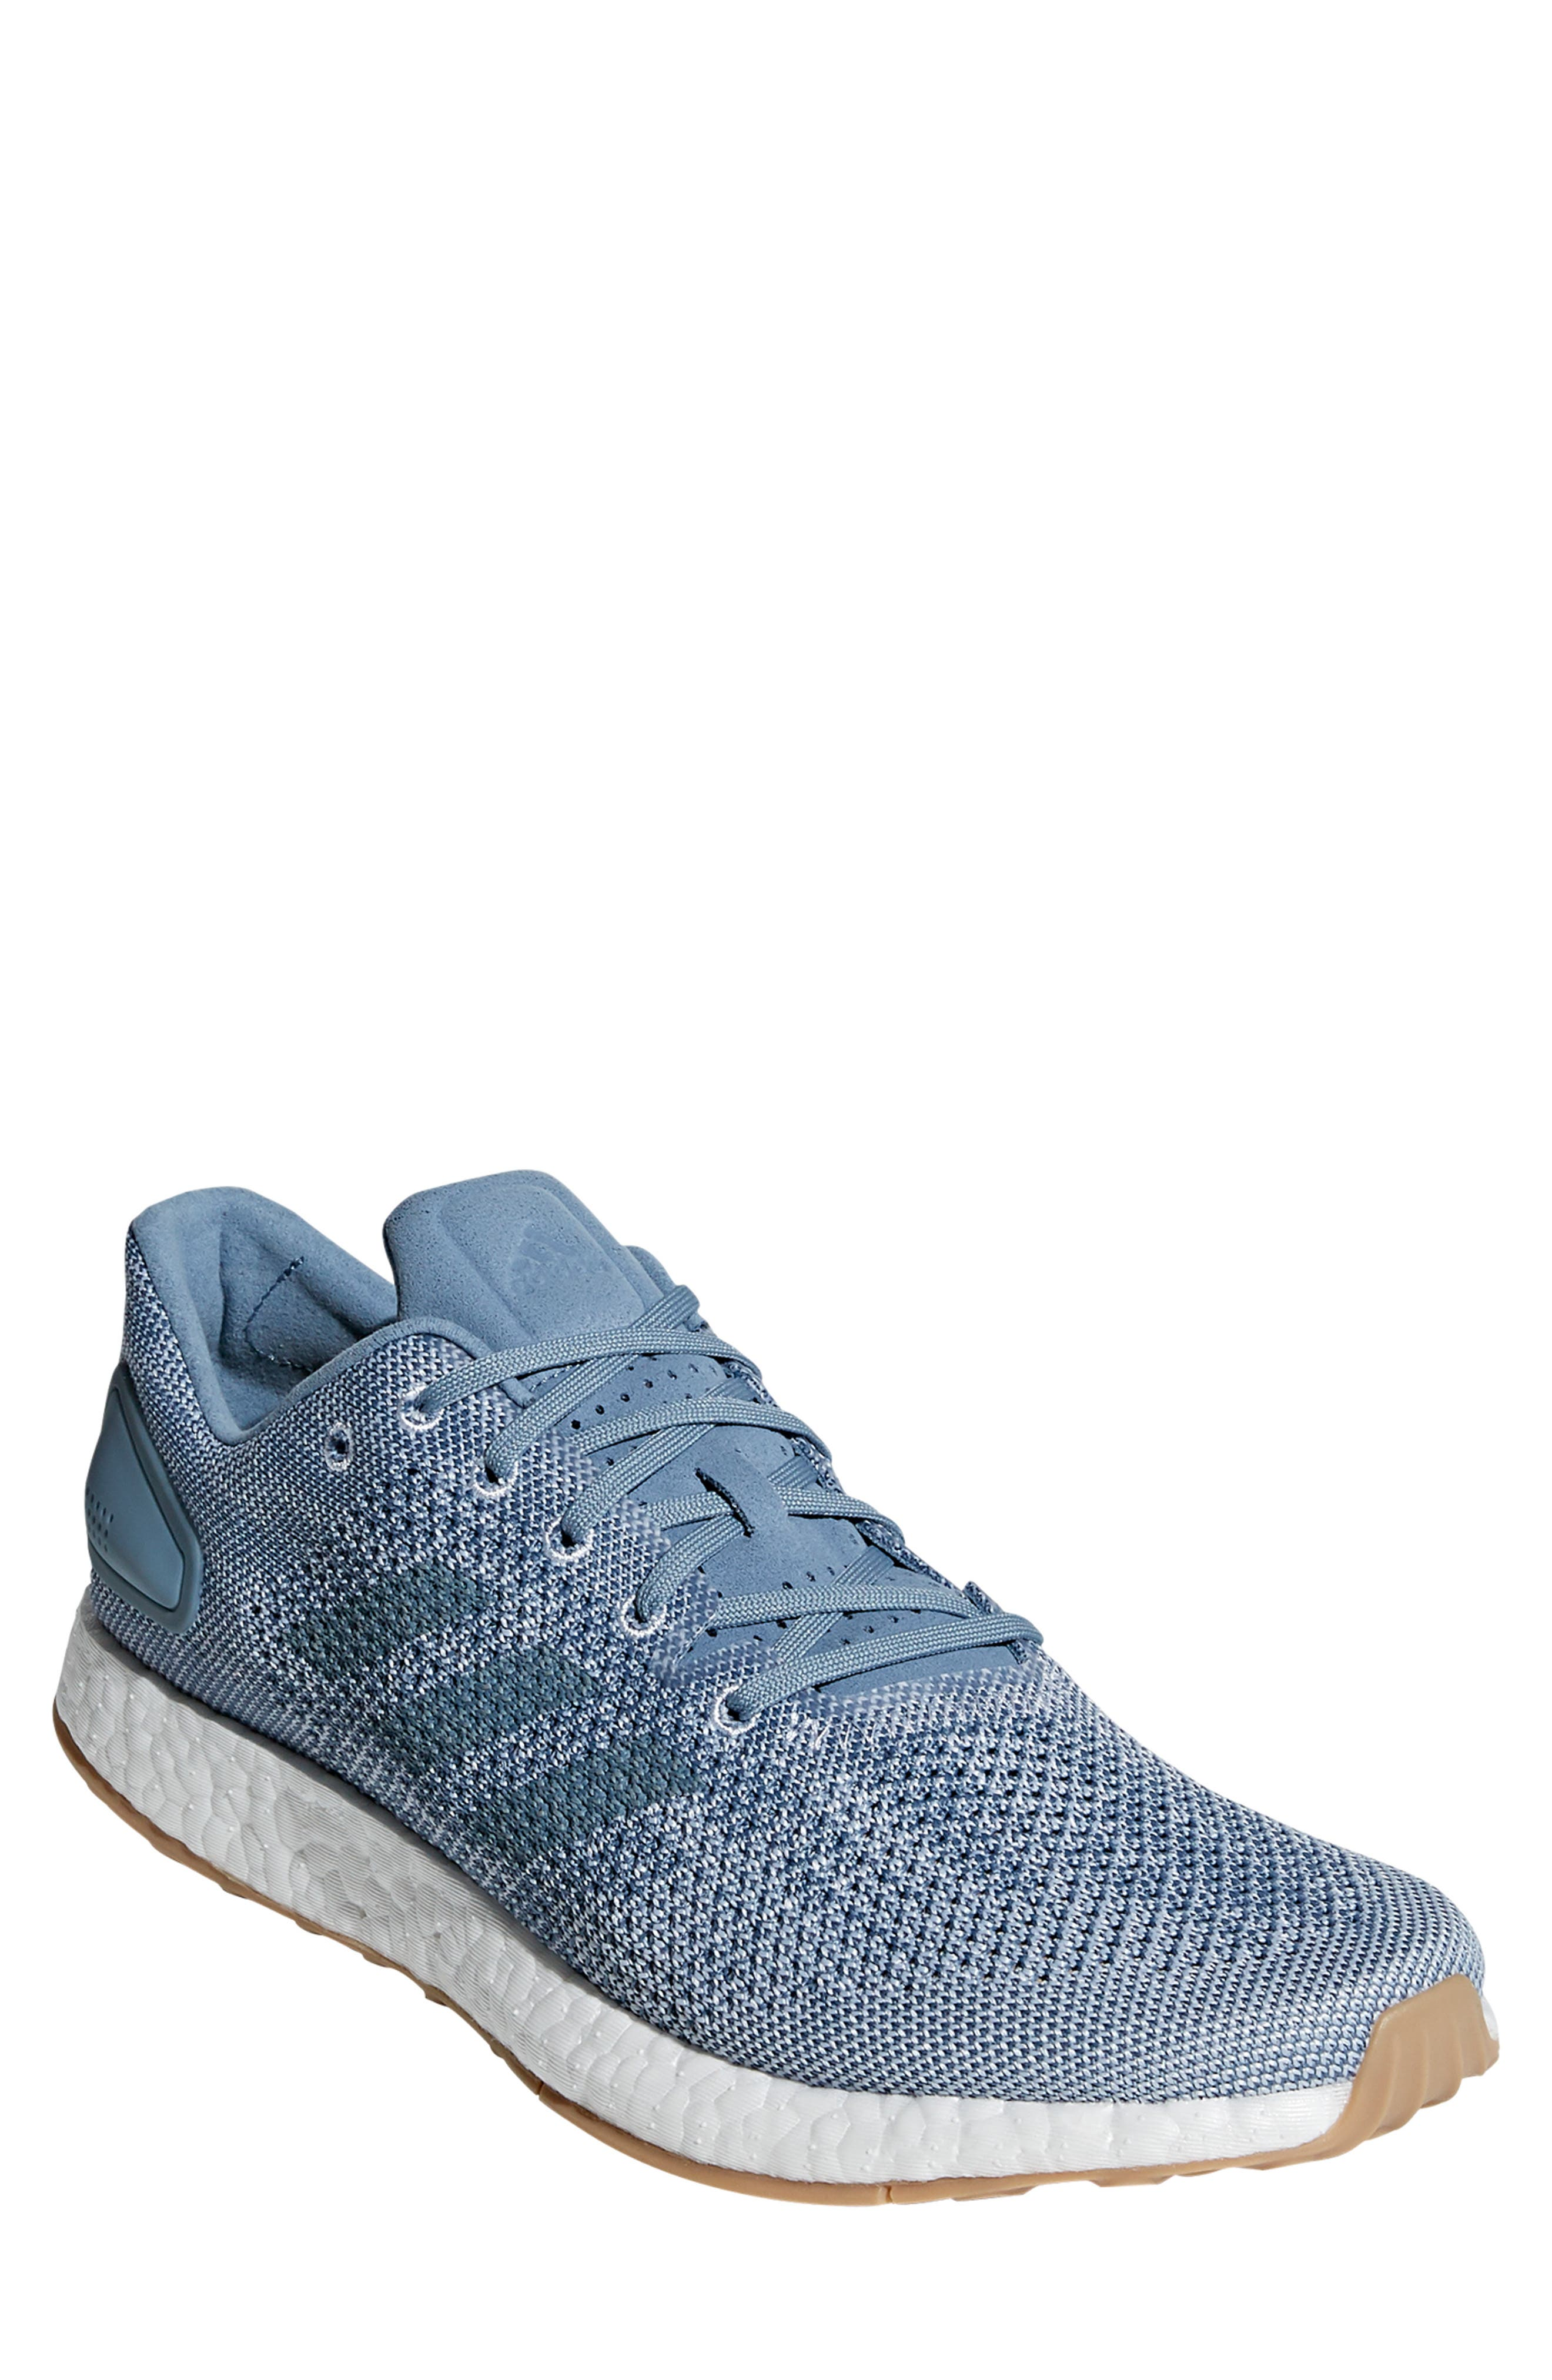 PureBoost DPR Running Shoe,                         Main,                         color, 360